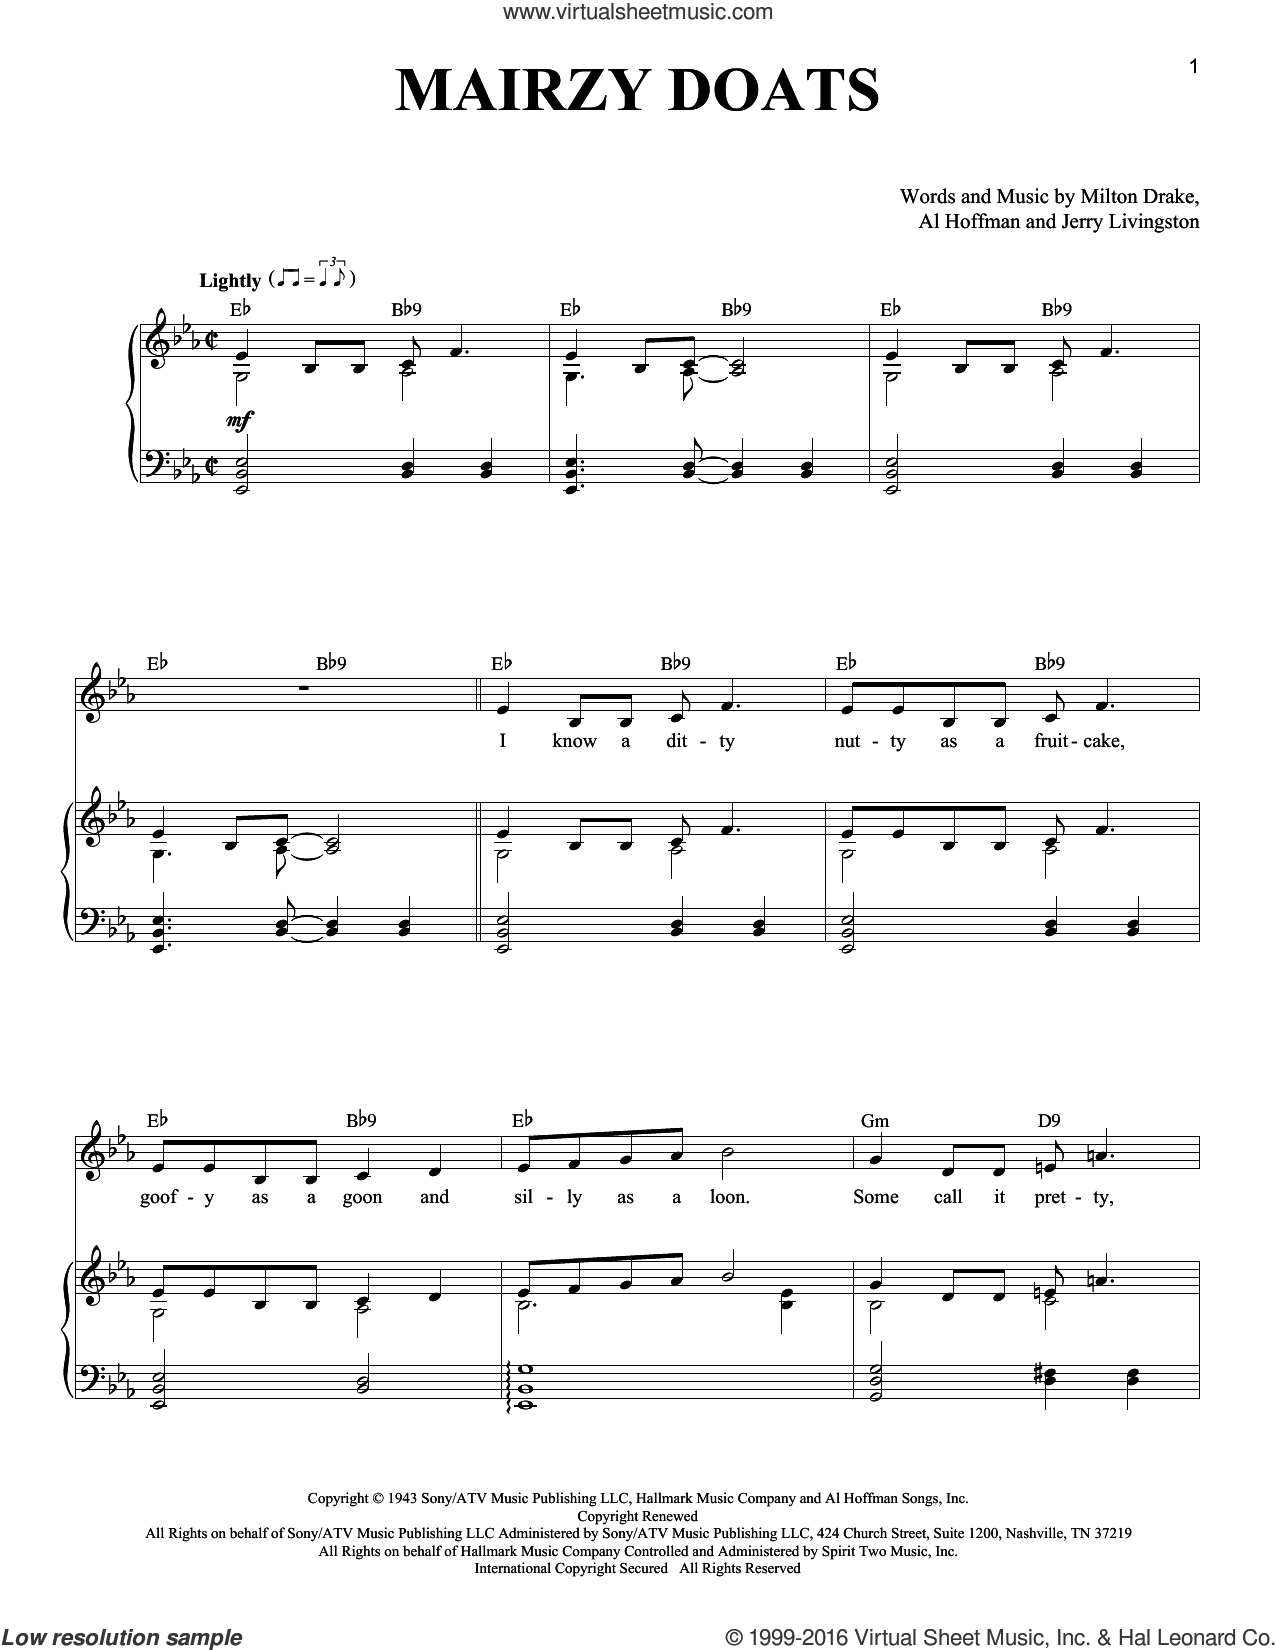 Mairzy Doats sheet music for voice and piano by Milton Drake and Al Hoffman, intermediate skill level